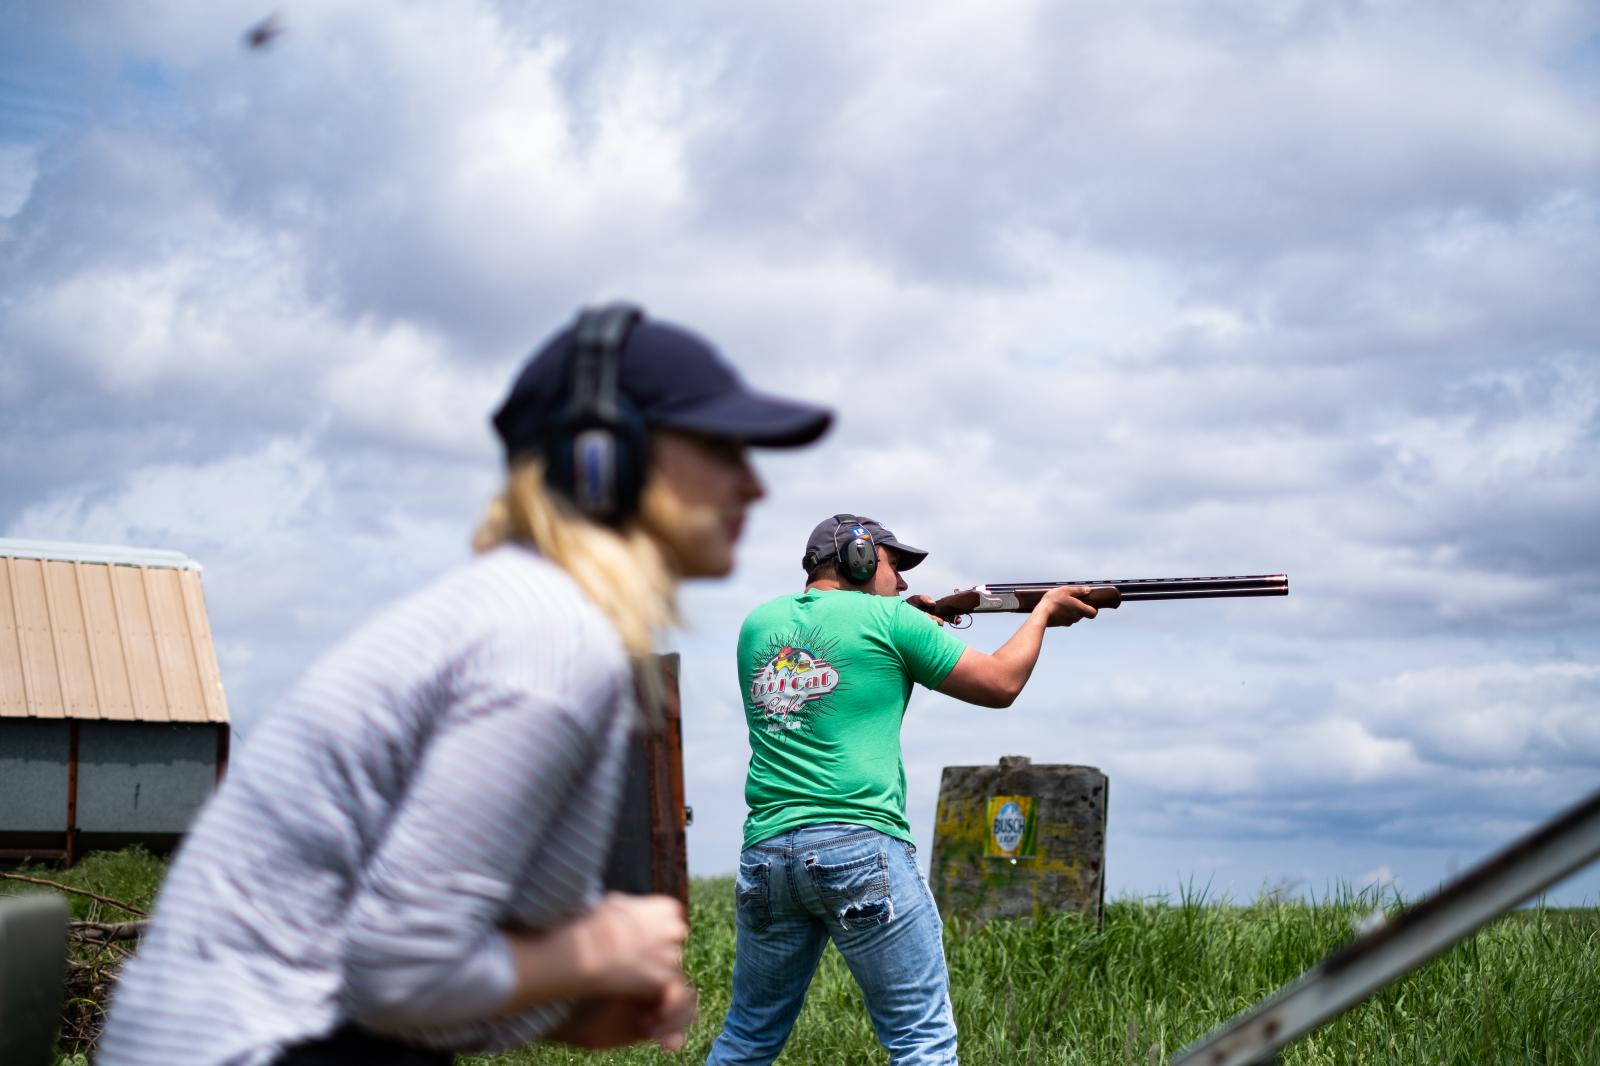 My brother fires at a clay pigeon that his girlfriend released from the thrower.